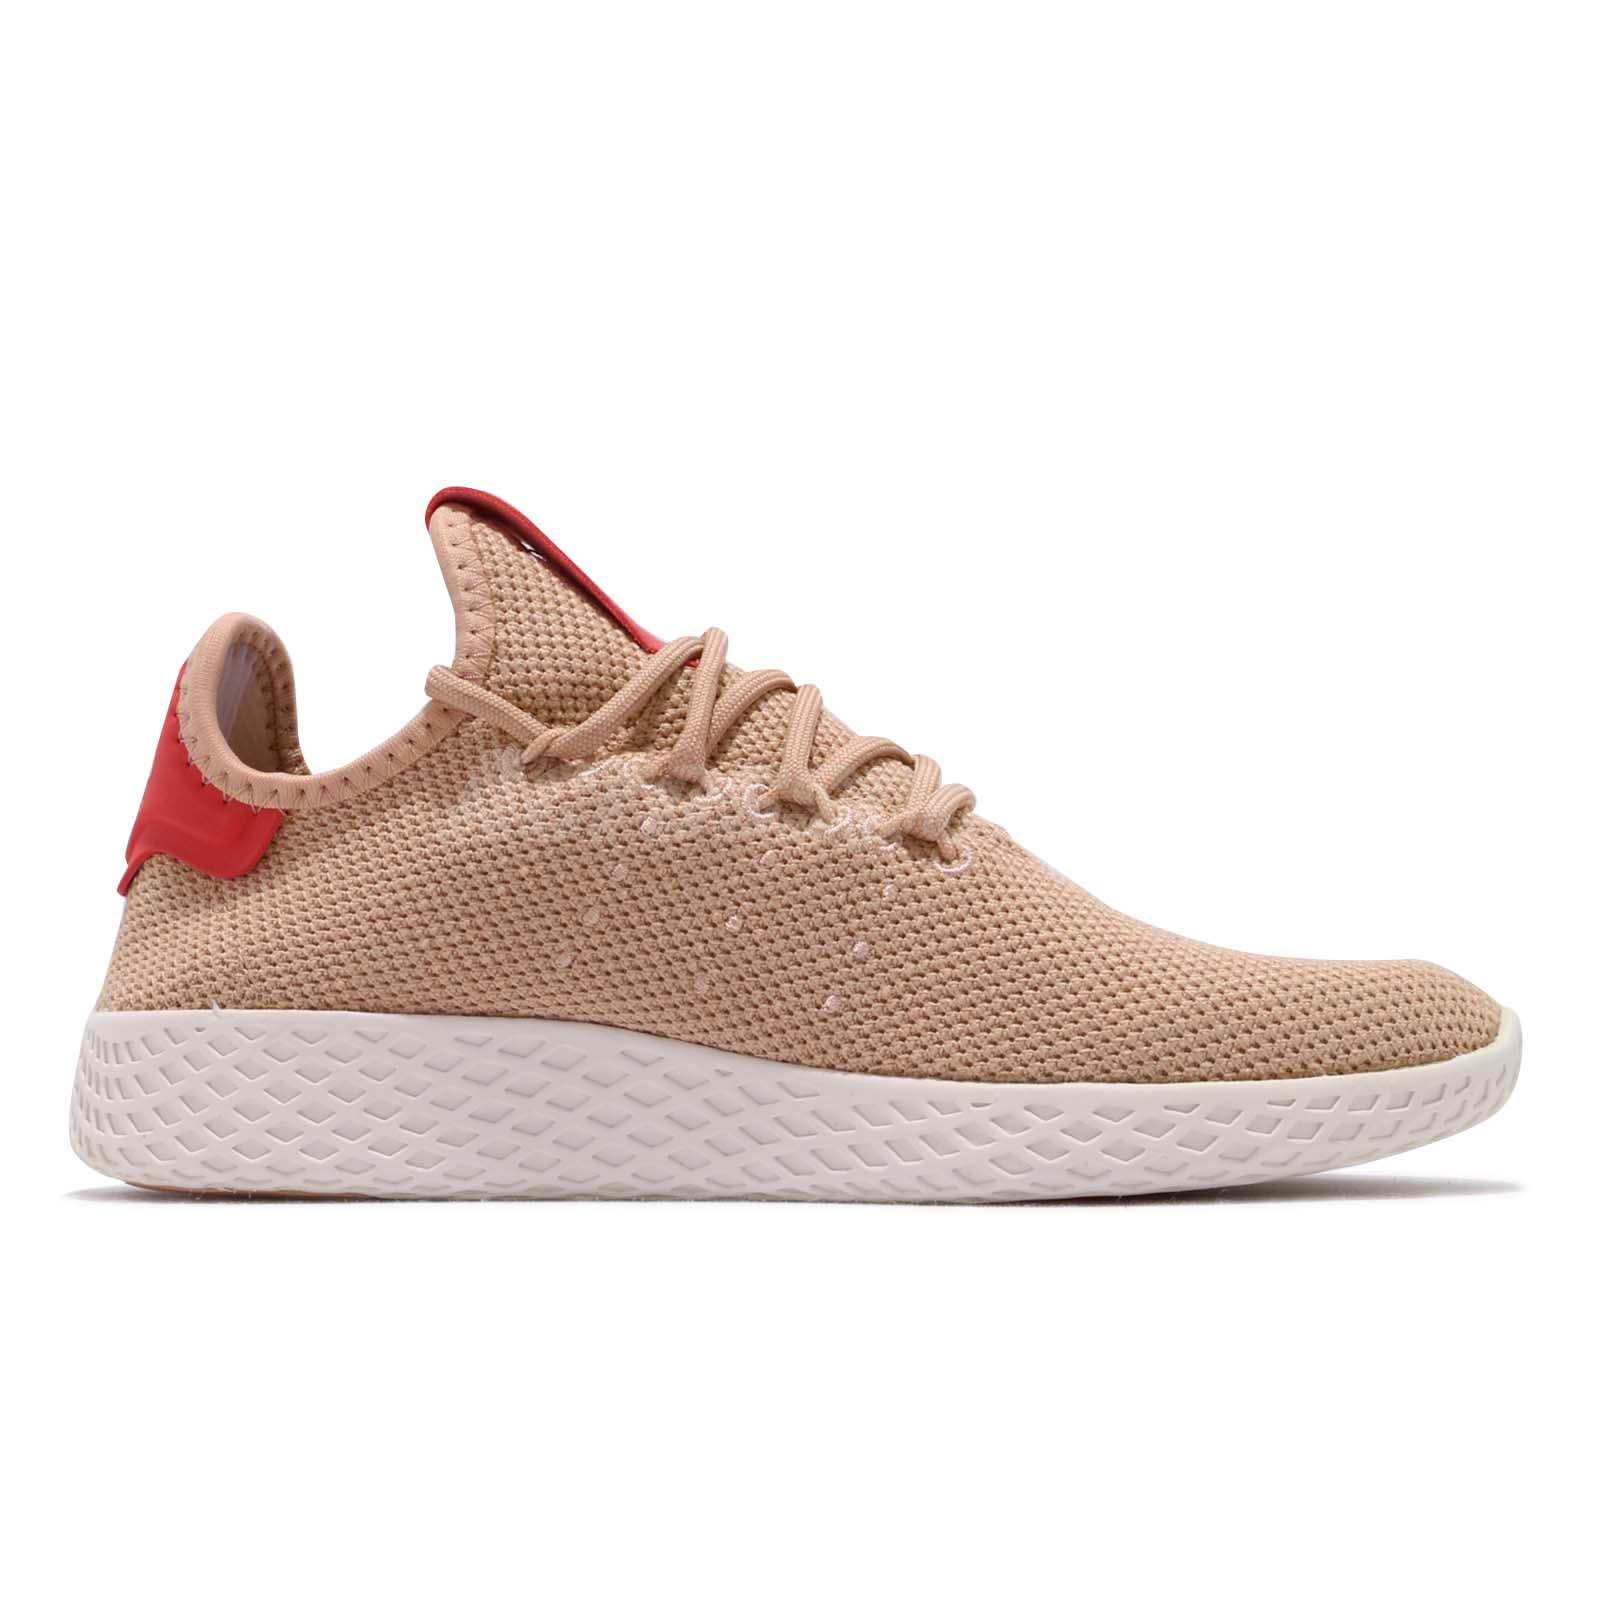 84dd1378cf4e9 adidas Originals PW Tennis HU Pharrell Williams Linen Women Shoes ...